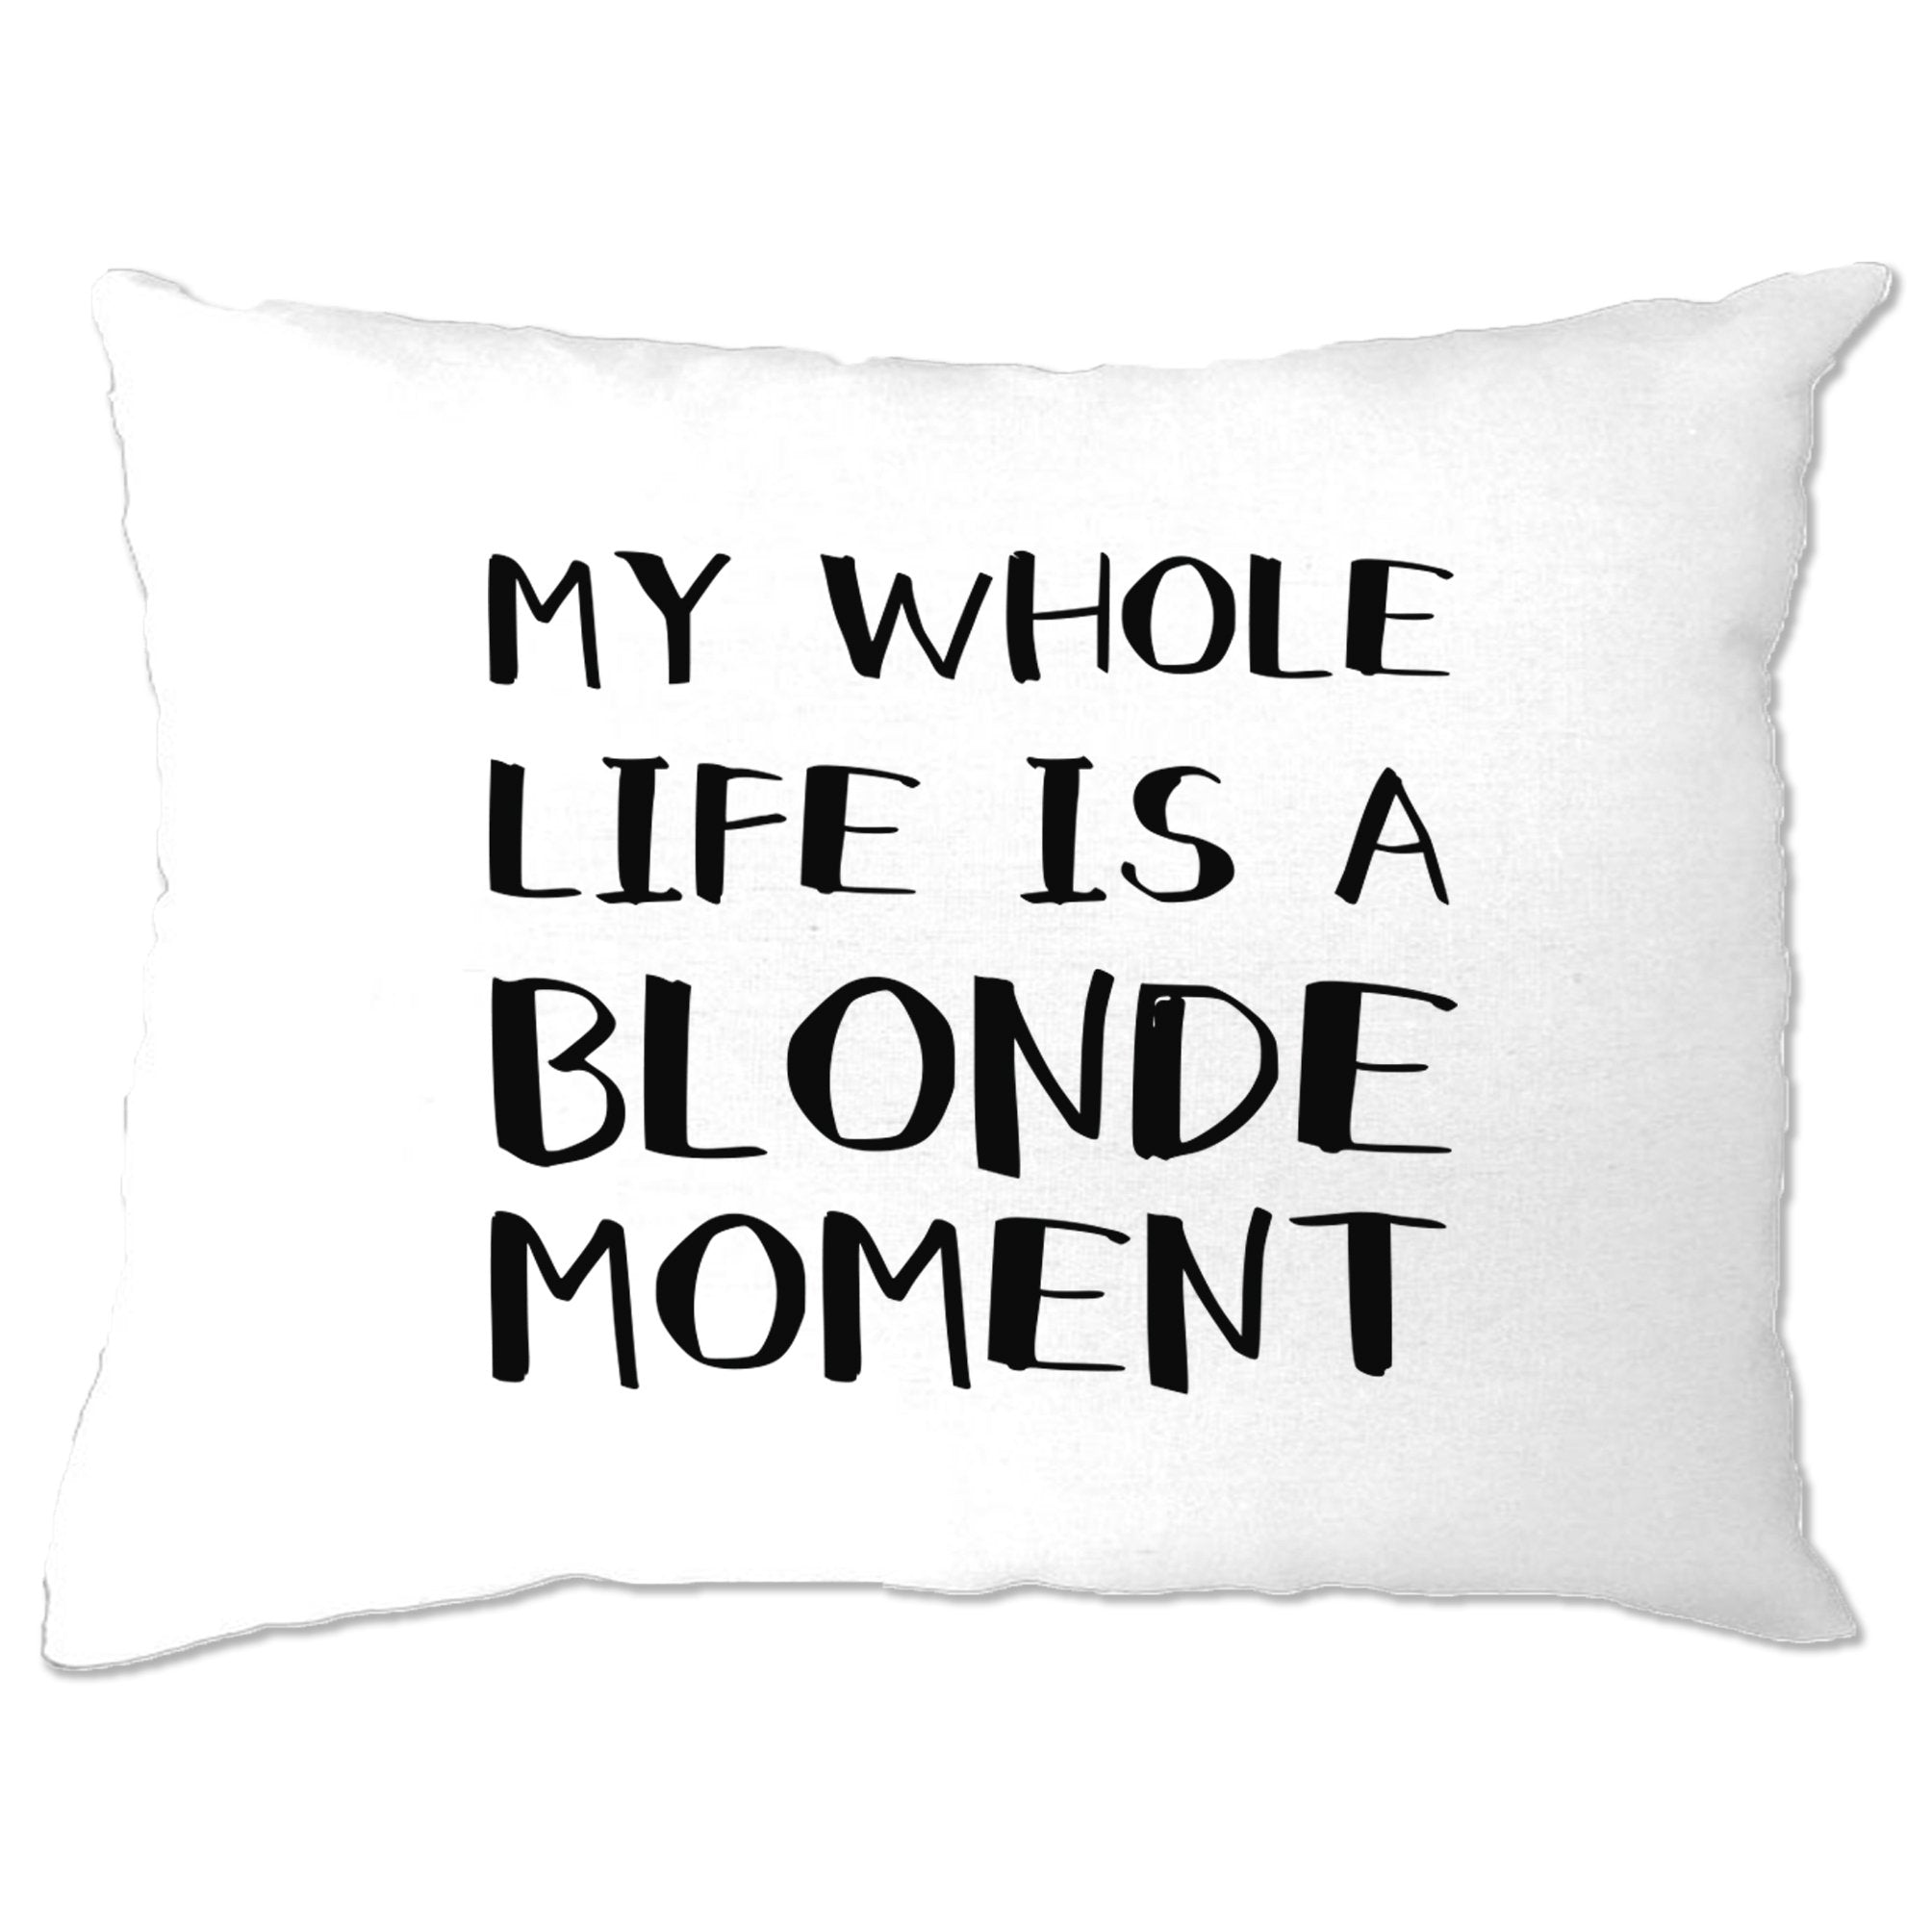 Novelty Pillow Case My Whole Life Is A Blonde Moment Joke